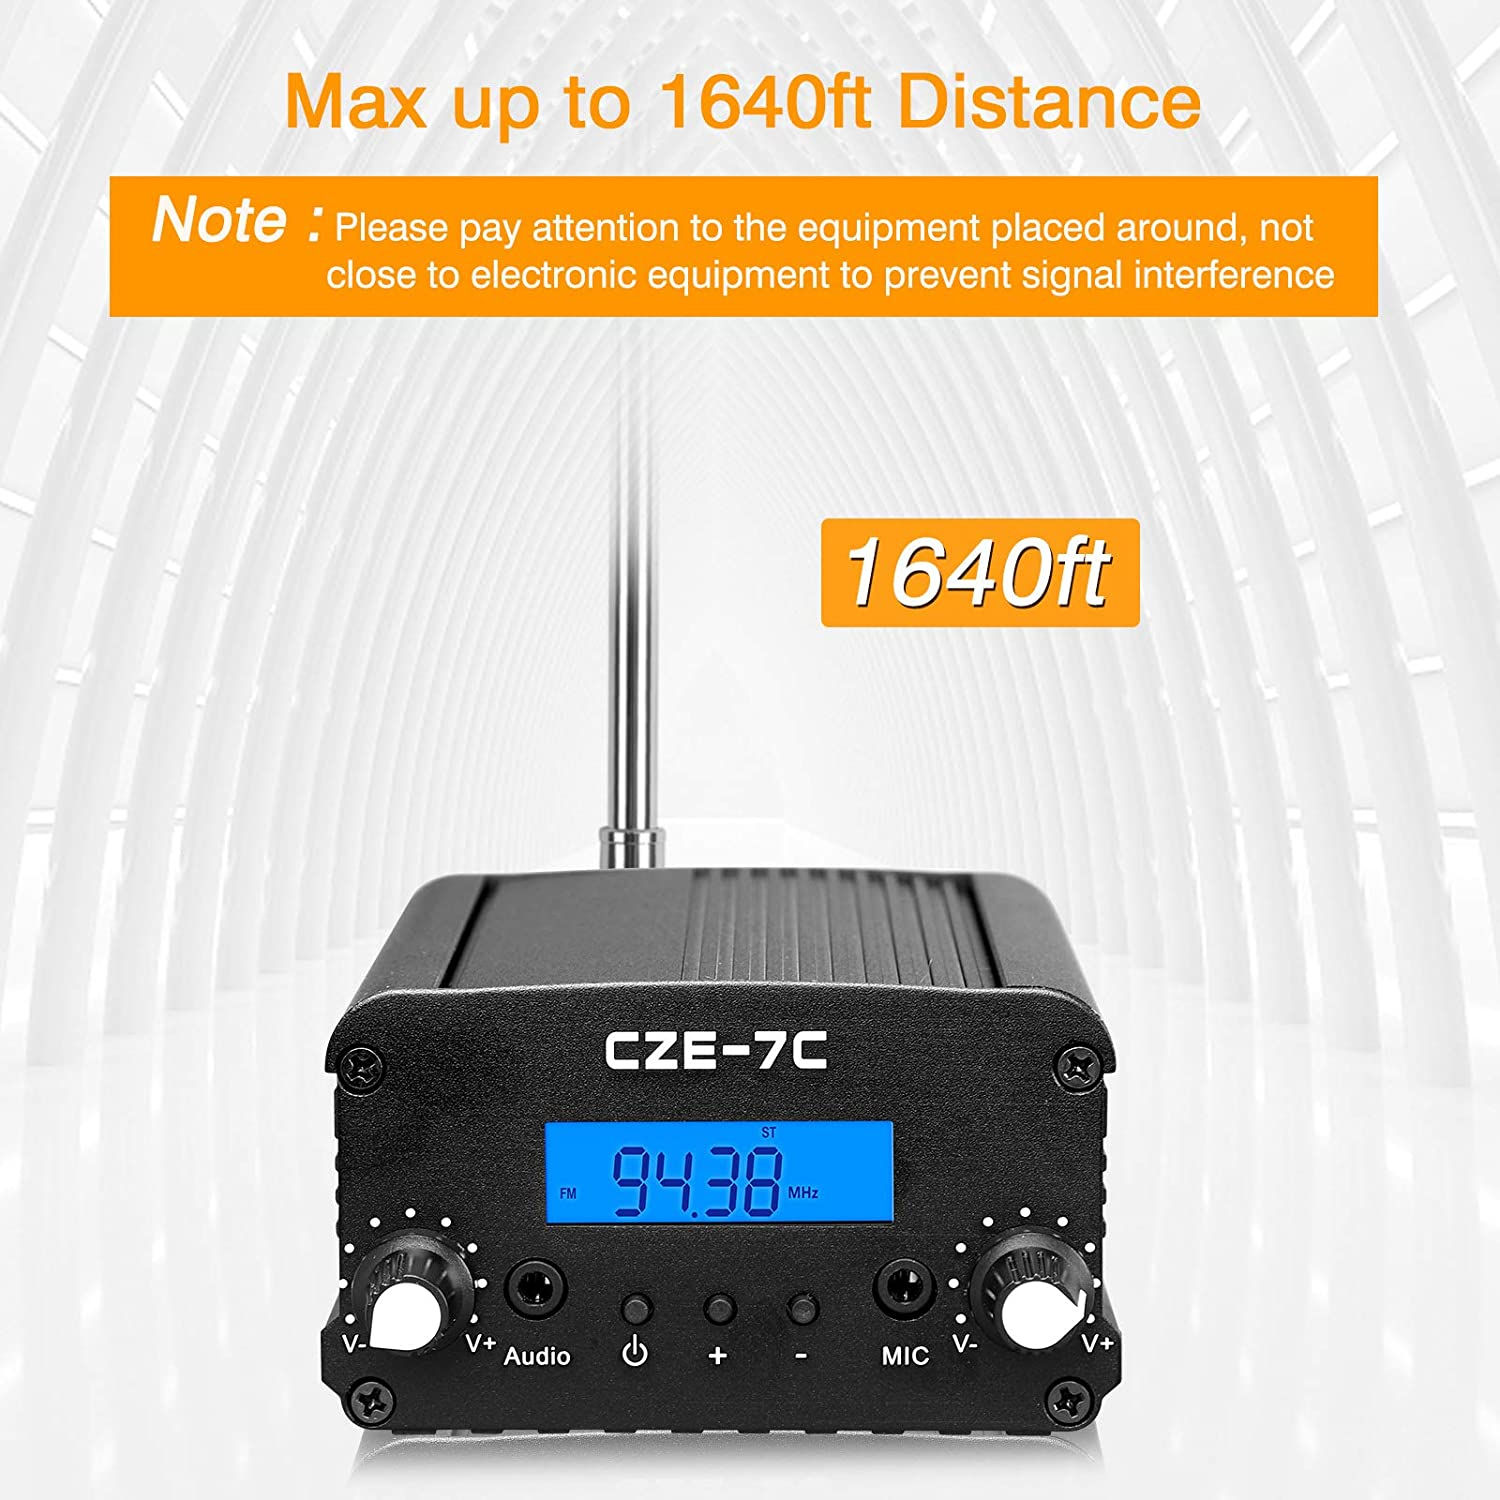 Built-in PLL Radio Stereo FM Transmitter for Drive-in Supermarket School, Fm Transmitter for Church 76~108MHz Fm Radio Transmitter with Antenna Elikliv 7W Wireless Stereo Broadcast with Microphone